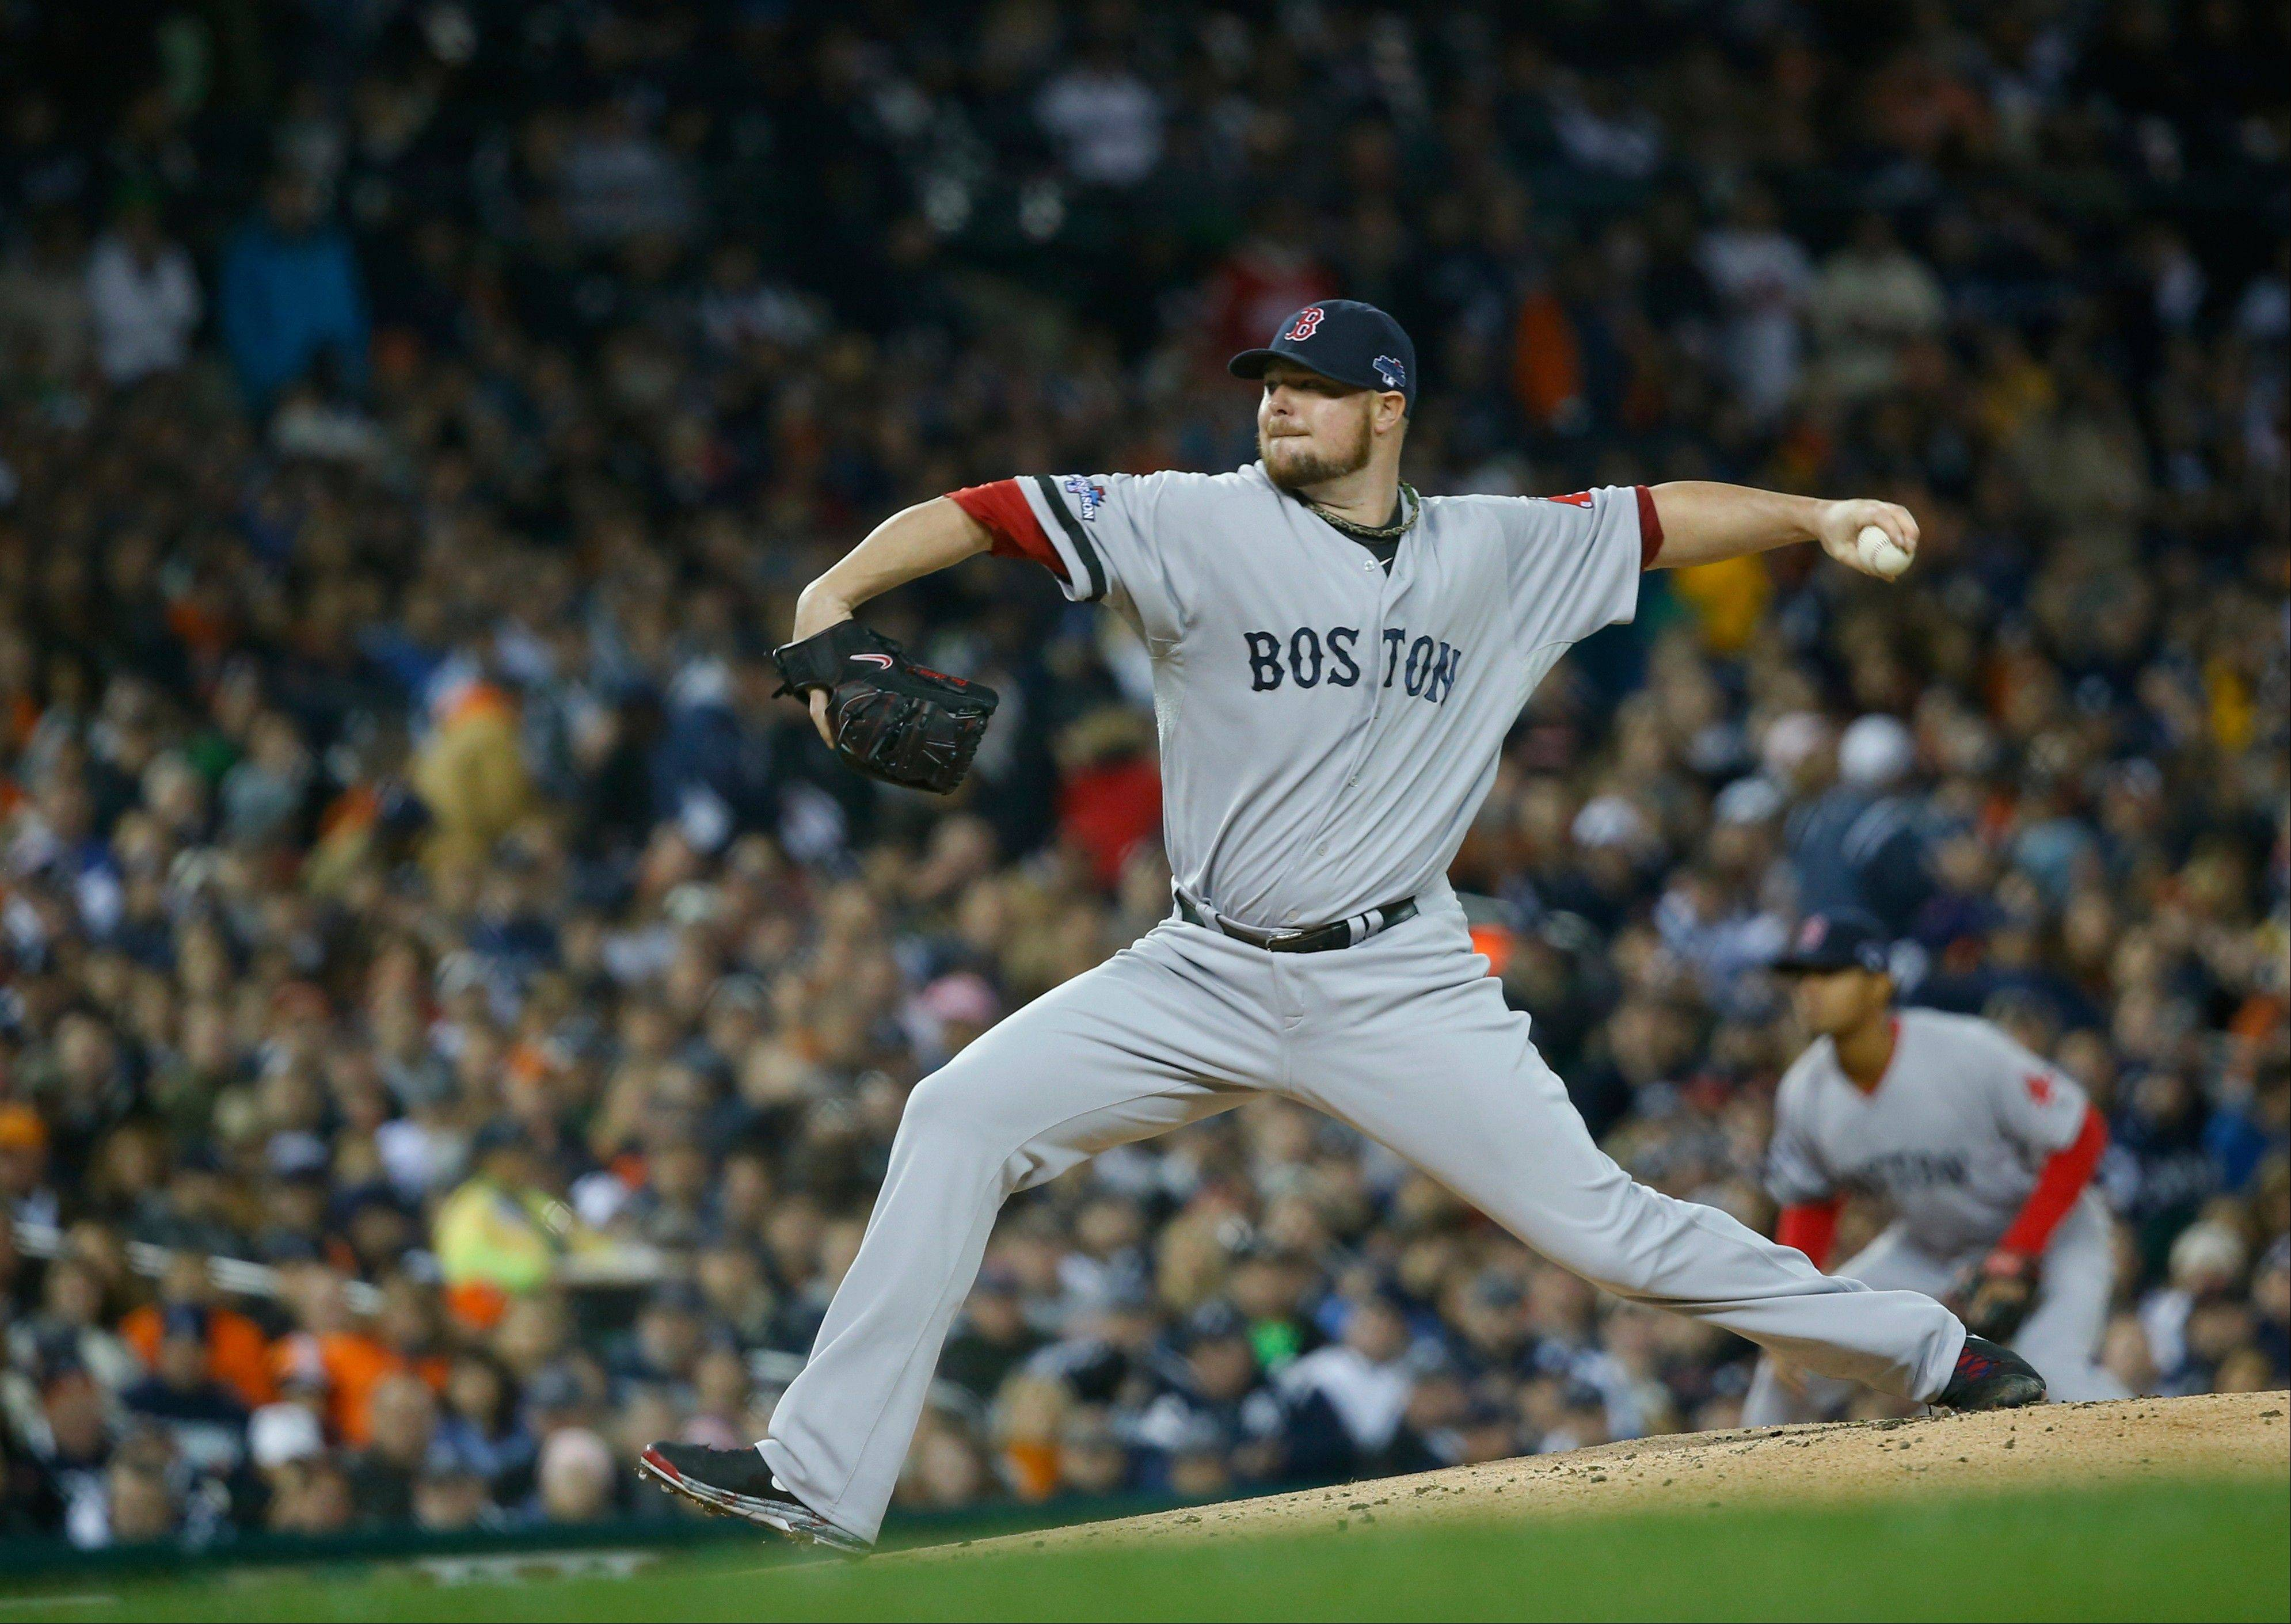 Boston Red Sox starting pitcher Jon Lester throws during Game 5 of the American League Championship Series in Detroit last Thursday.